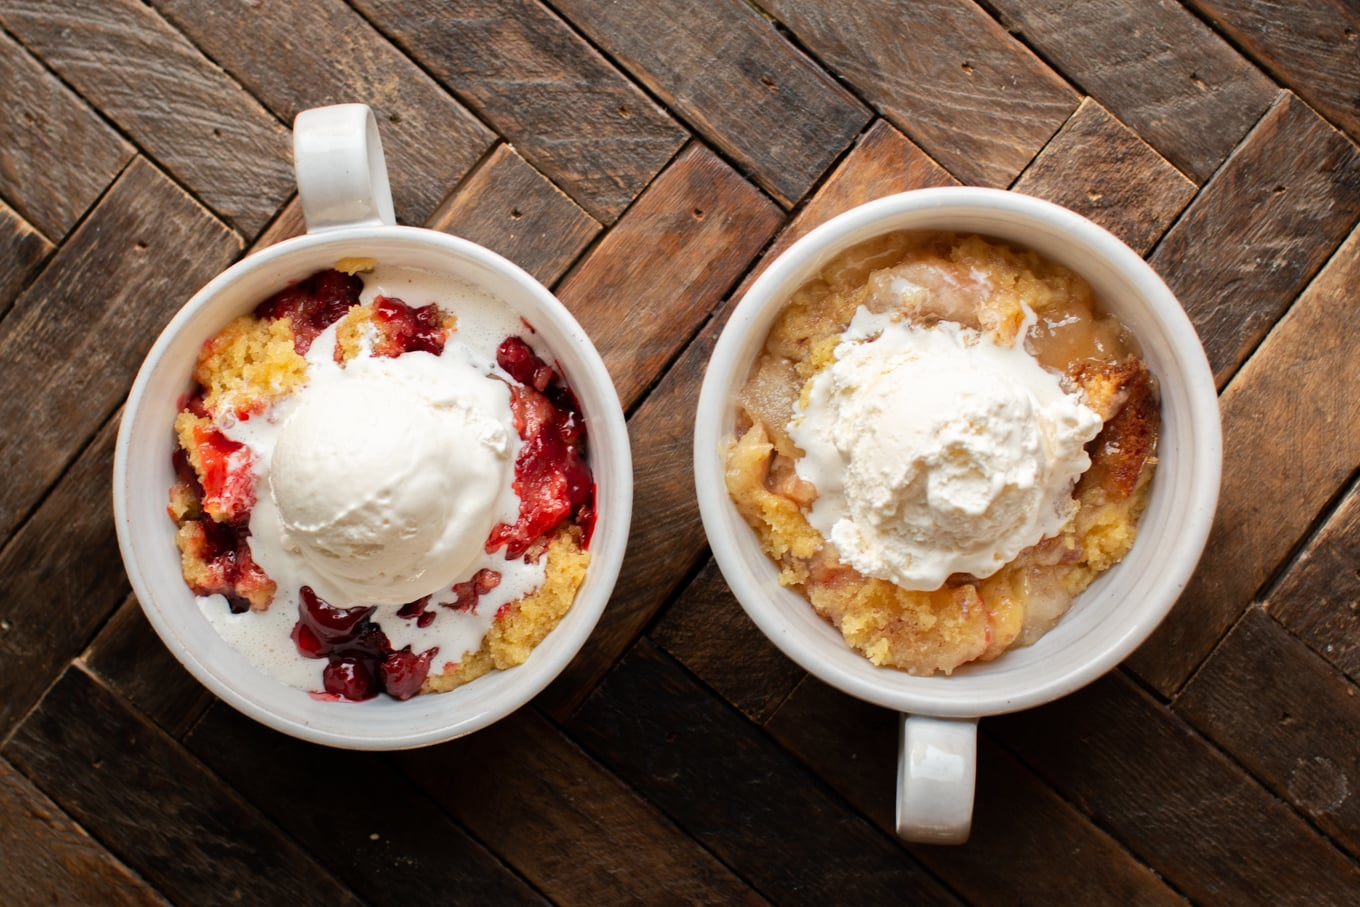 Bowl of cherry cobbler, bowl of apple cobbler both with ice cream on top.